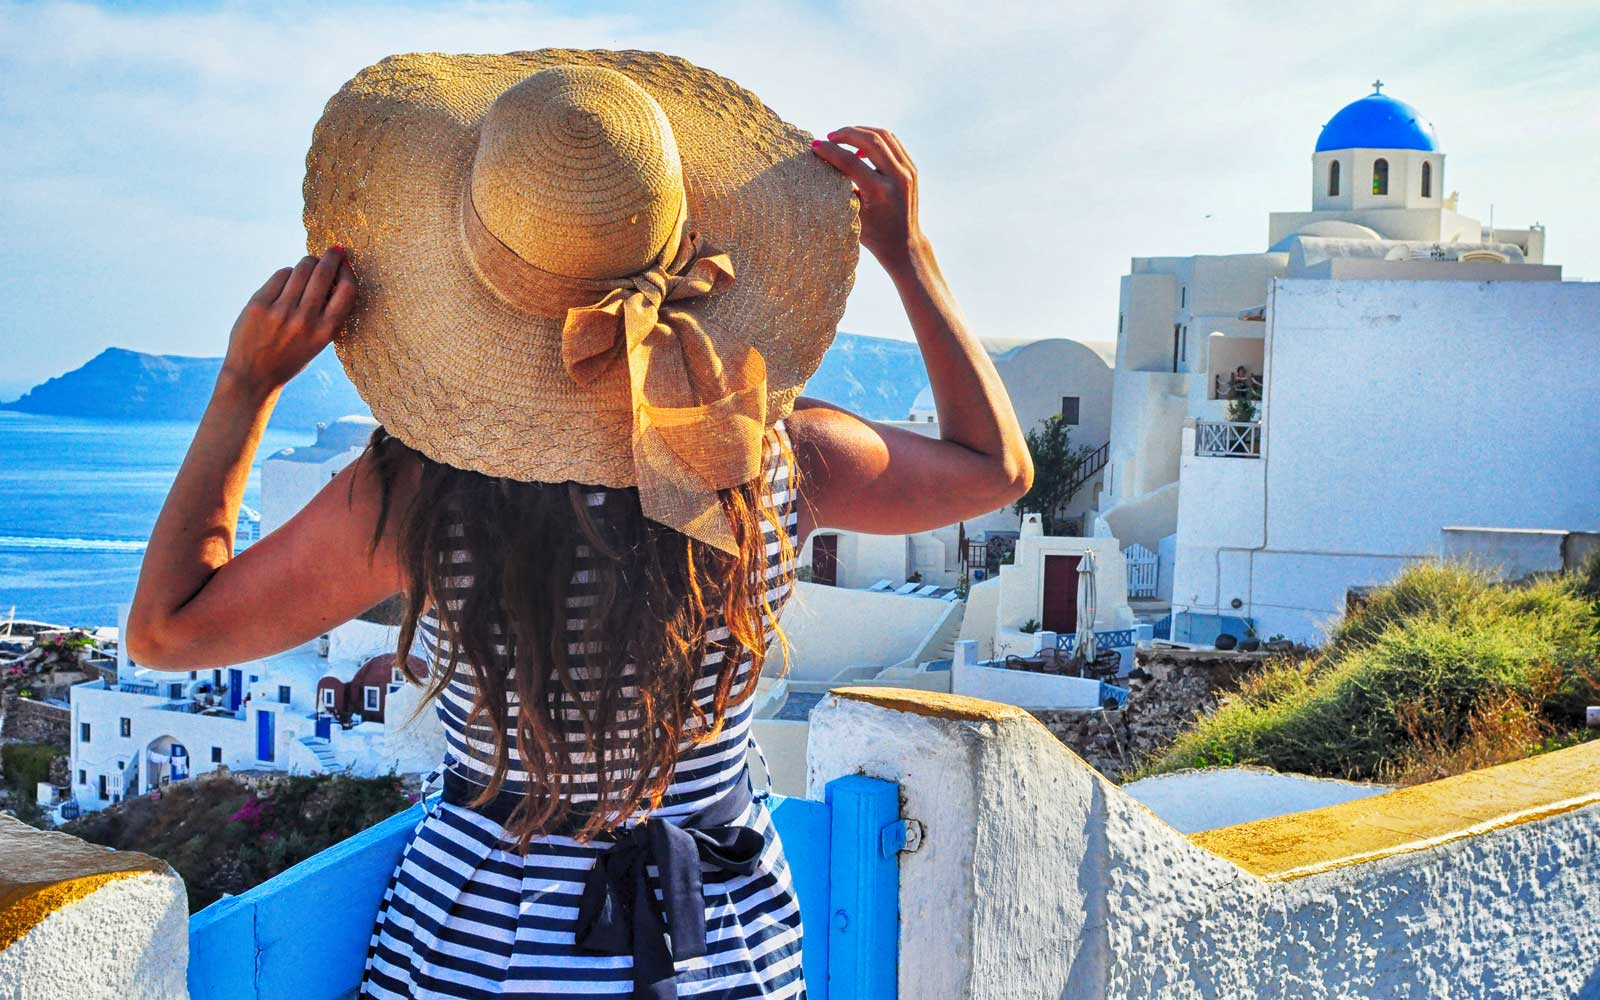 I Spent 8 Months Traveling the World on $50 a Day — Here's How You Can Do It Too